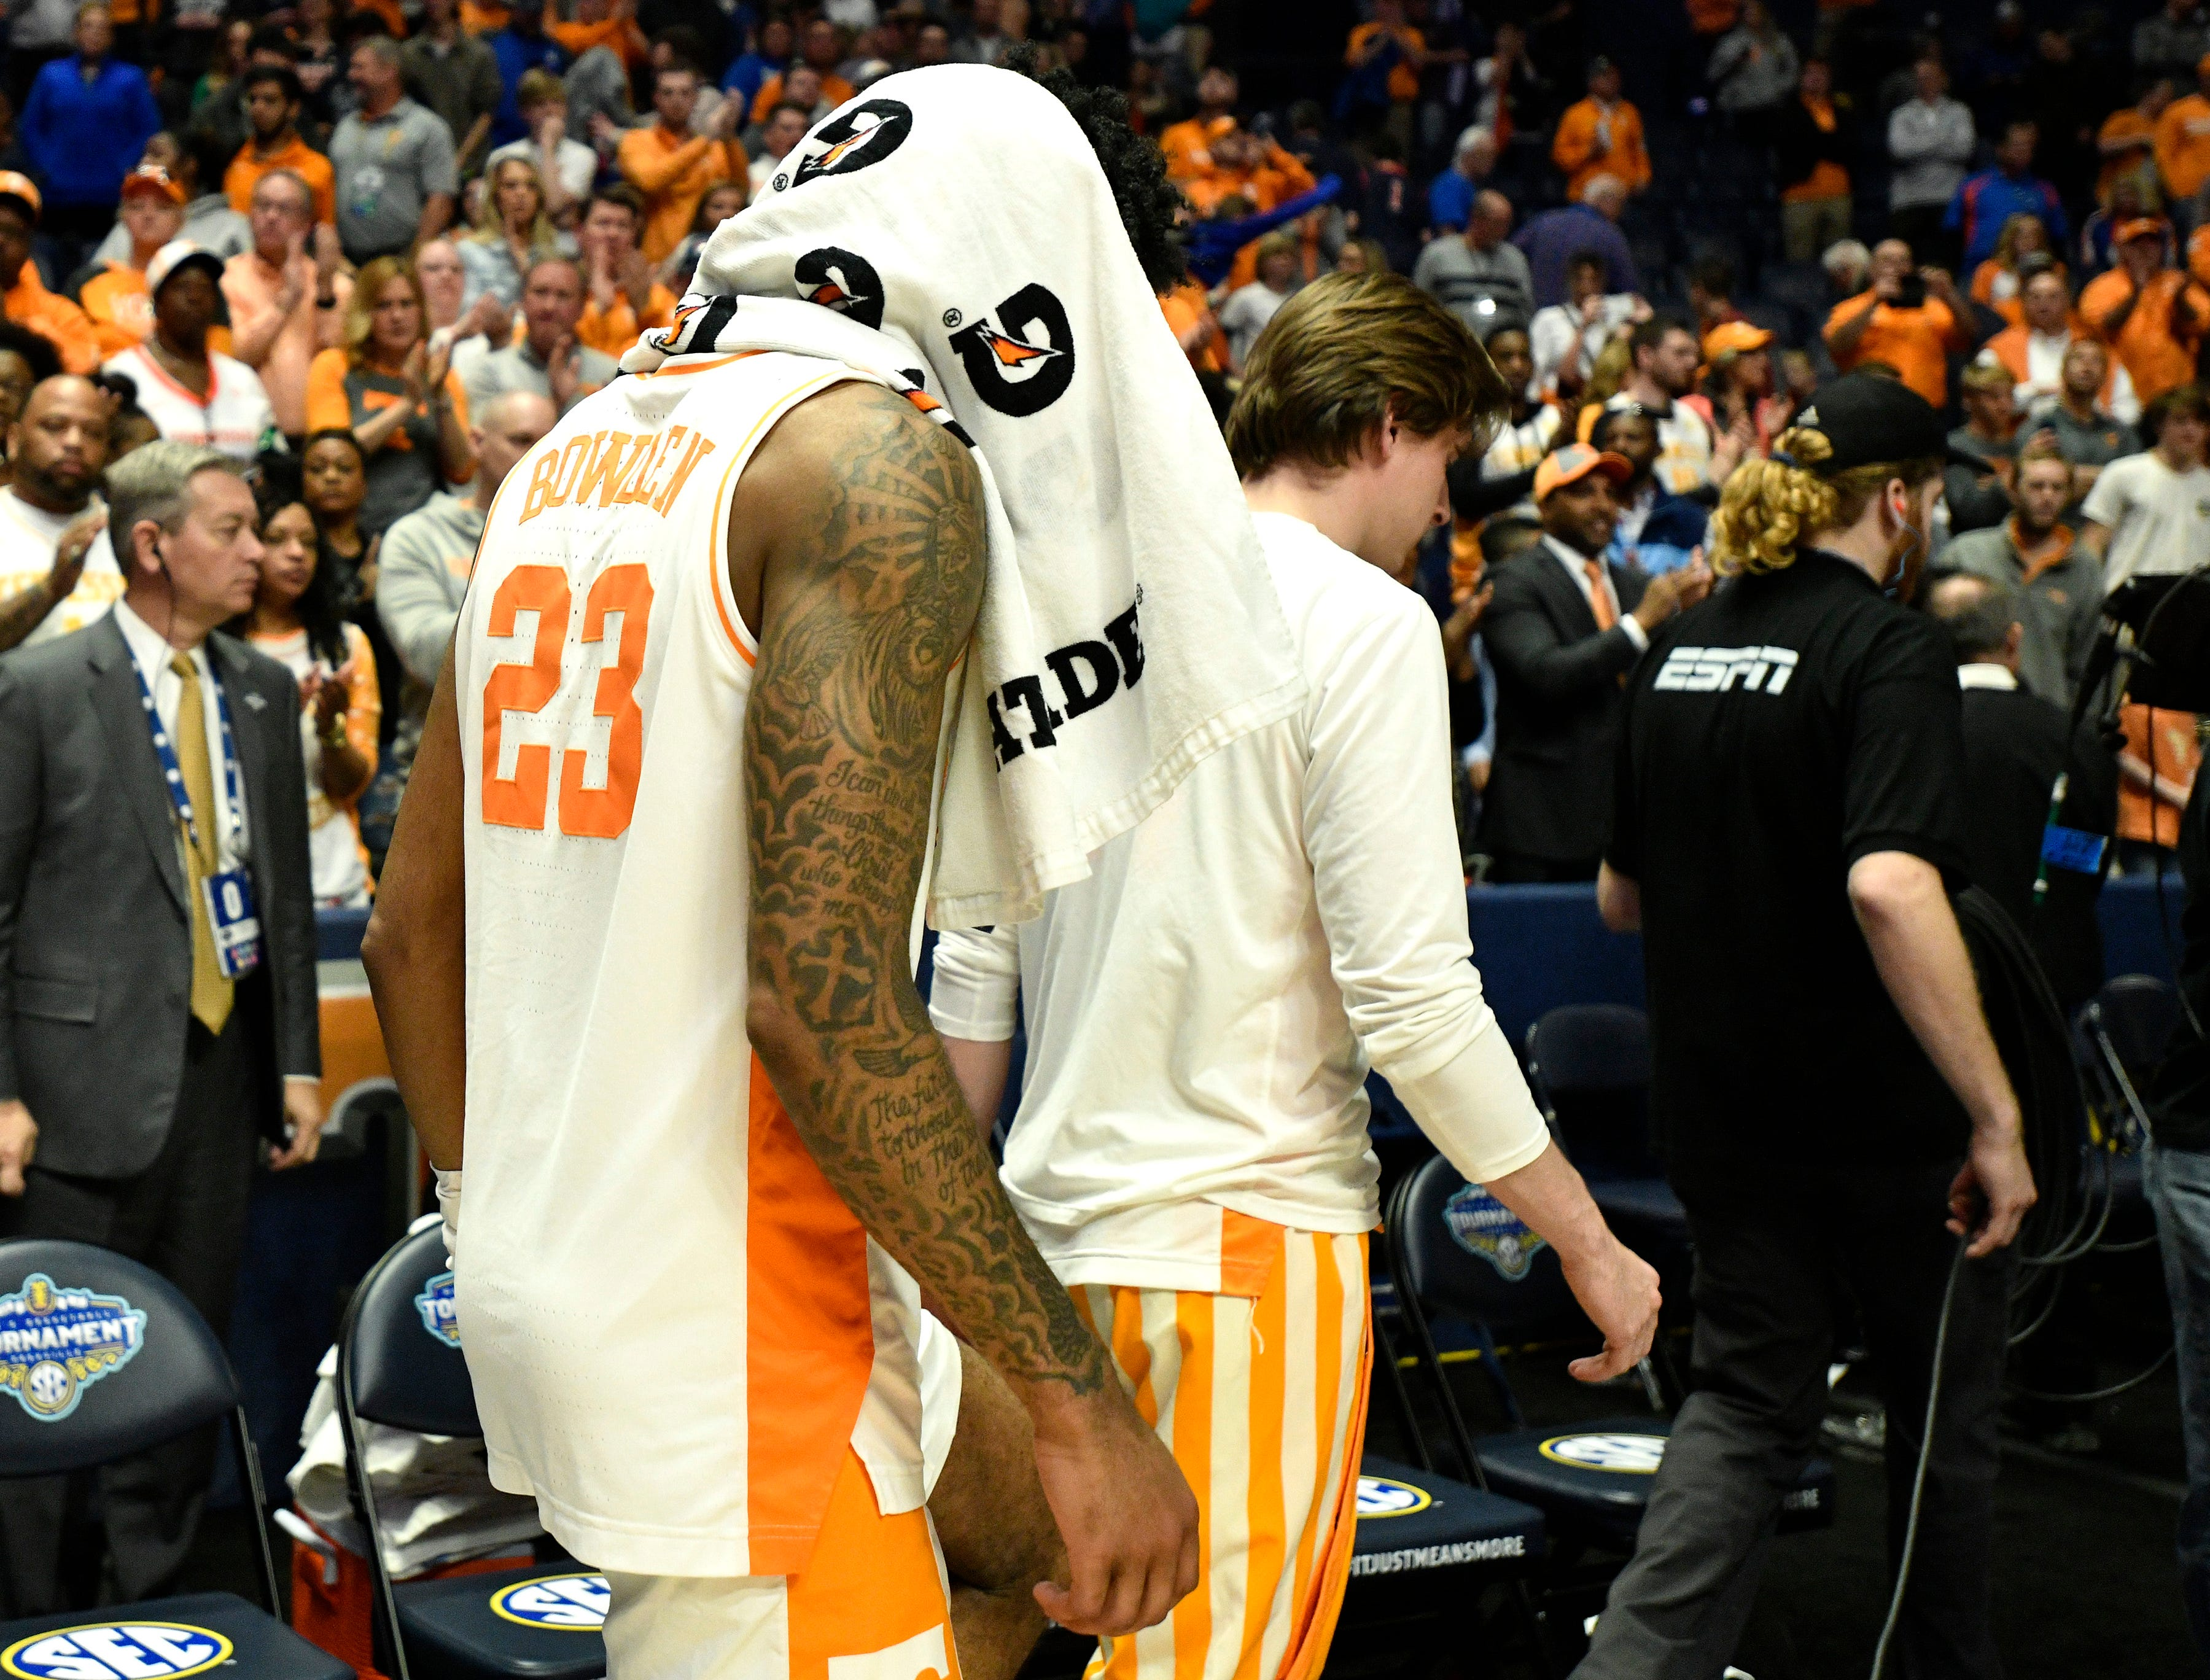 Tennessee guard Jordan Bowden (23) walks off the court after the team's loss to Auburn in the SEC Men's Basketball Tournament championship game at Bridgestone Arena in Nashville, Tenn., Sunday, March 17, 2019.